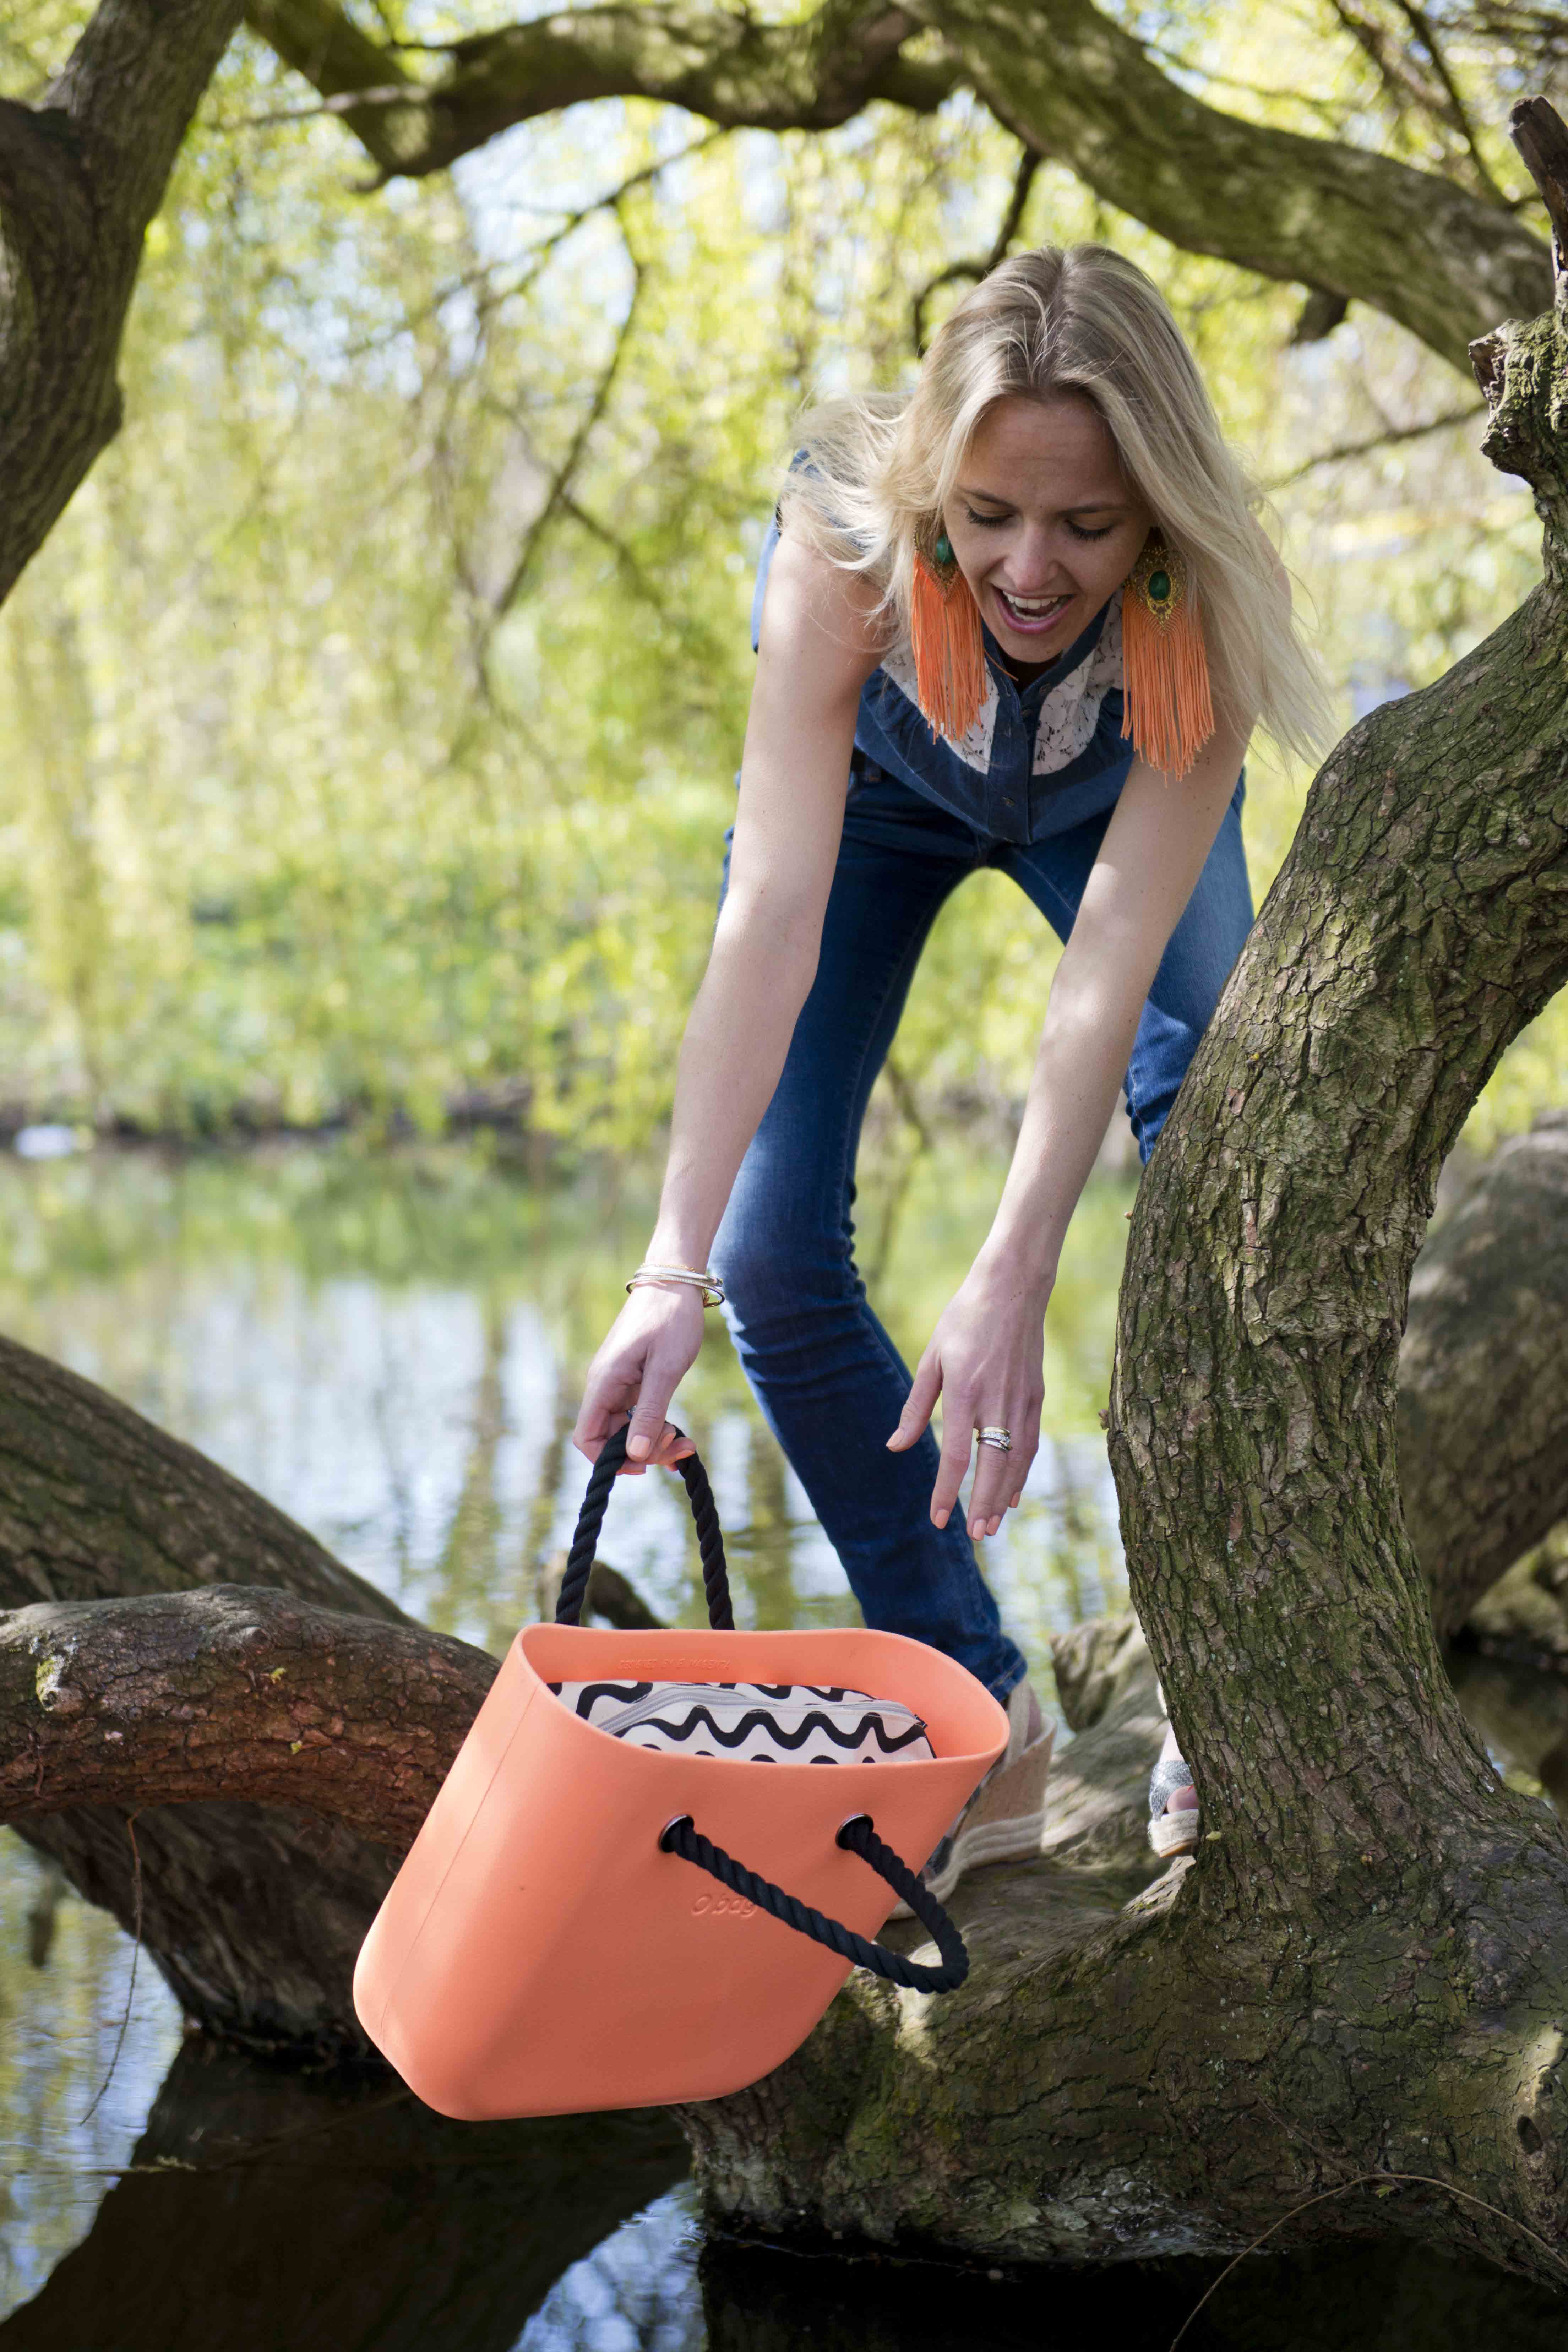 Bag at You - Kingsday - Koningsdag 2015 - O Bag - Fashion Blog - Don't fall in the water